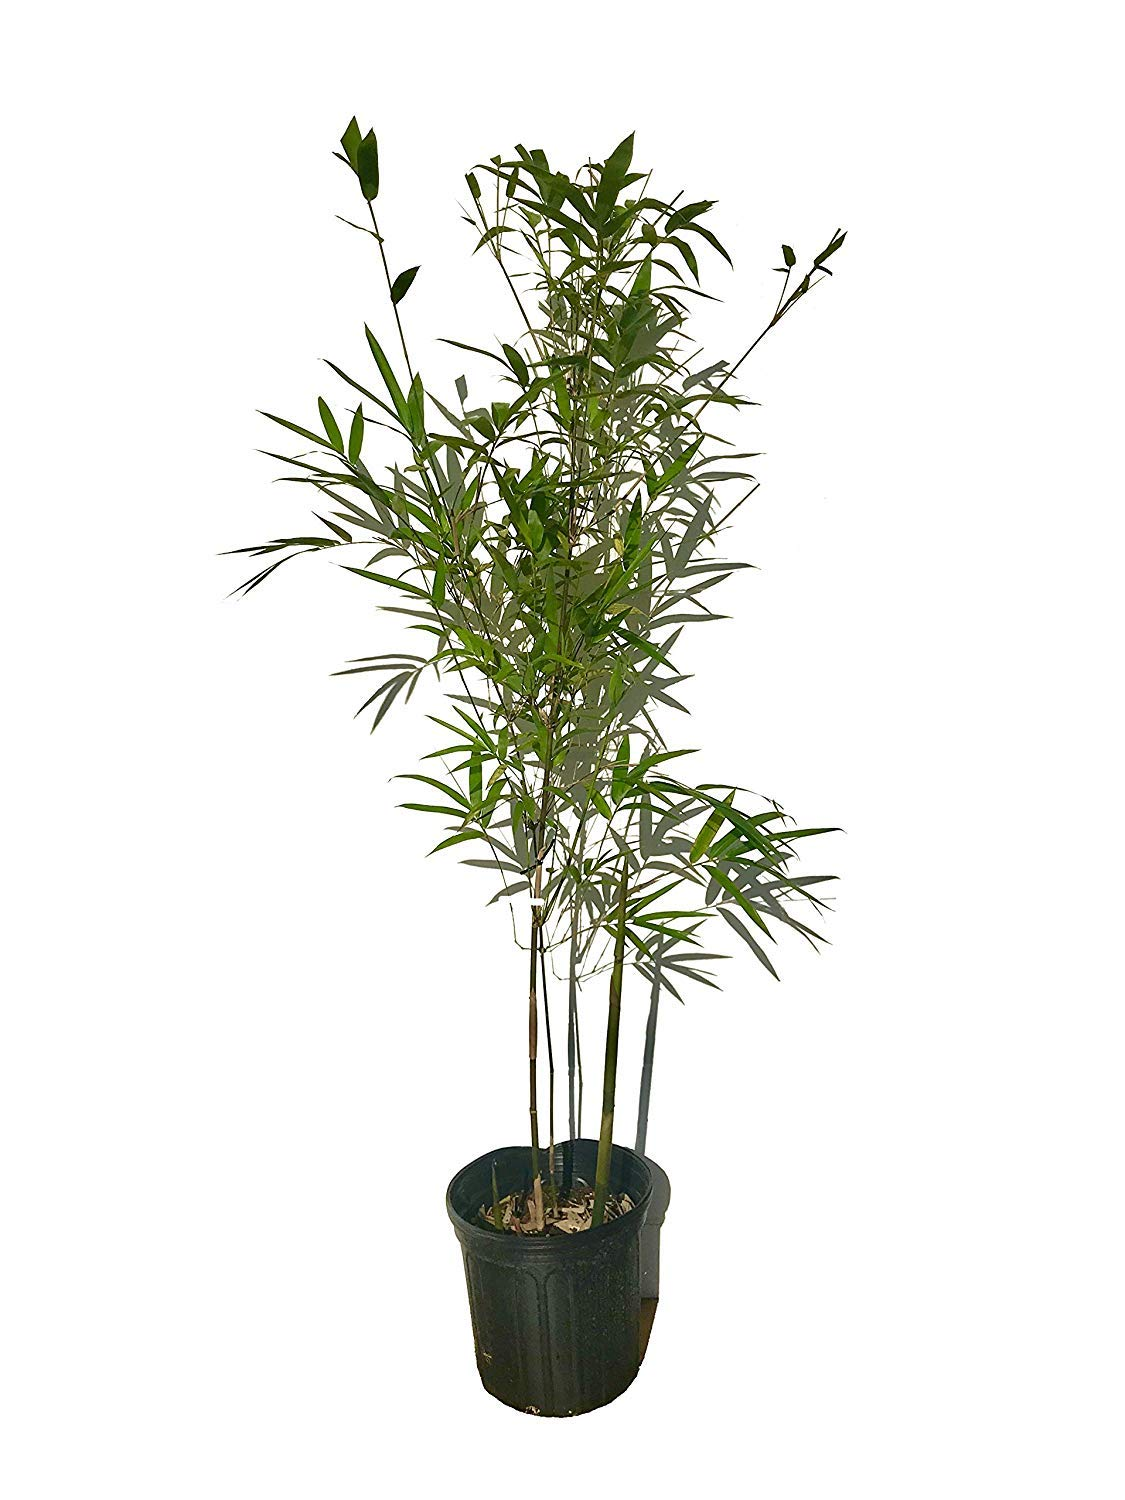 Graceful Bamboo - Slender Weavers - Textilis Gracilis - Live Plant - Fast Growing Evergreen Privacy Hedge by Florida Foliage (Image #1)